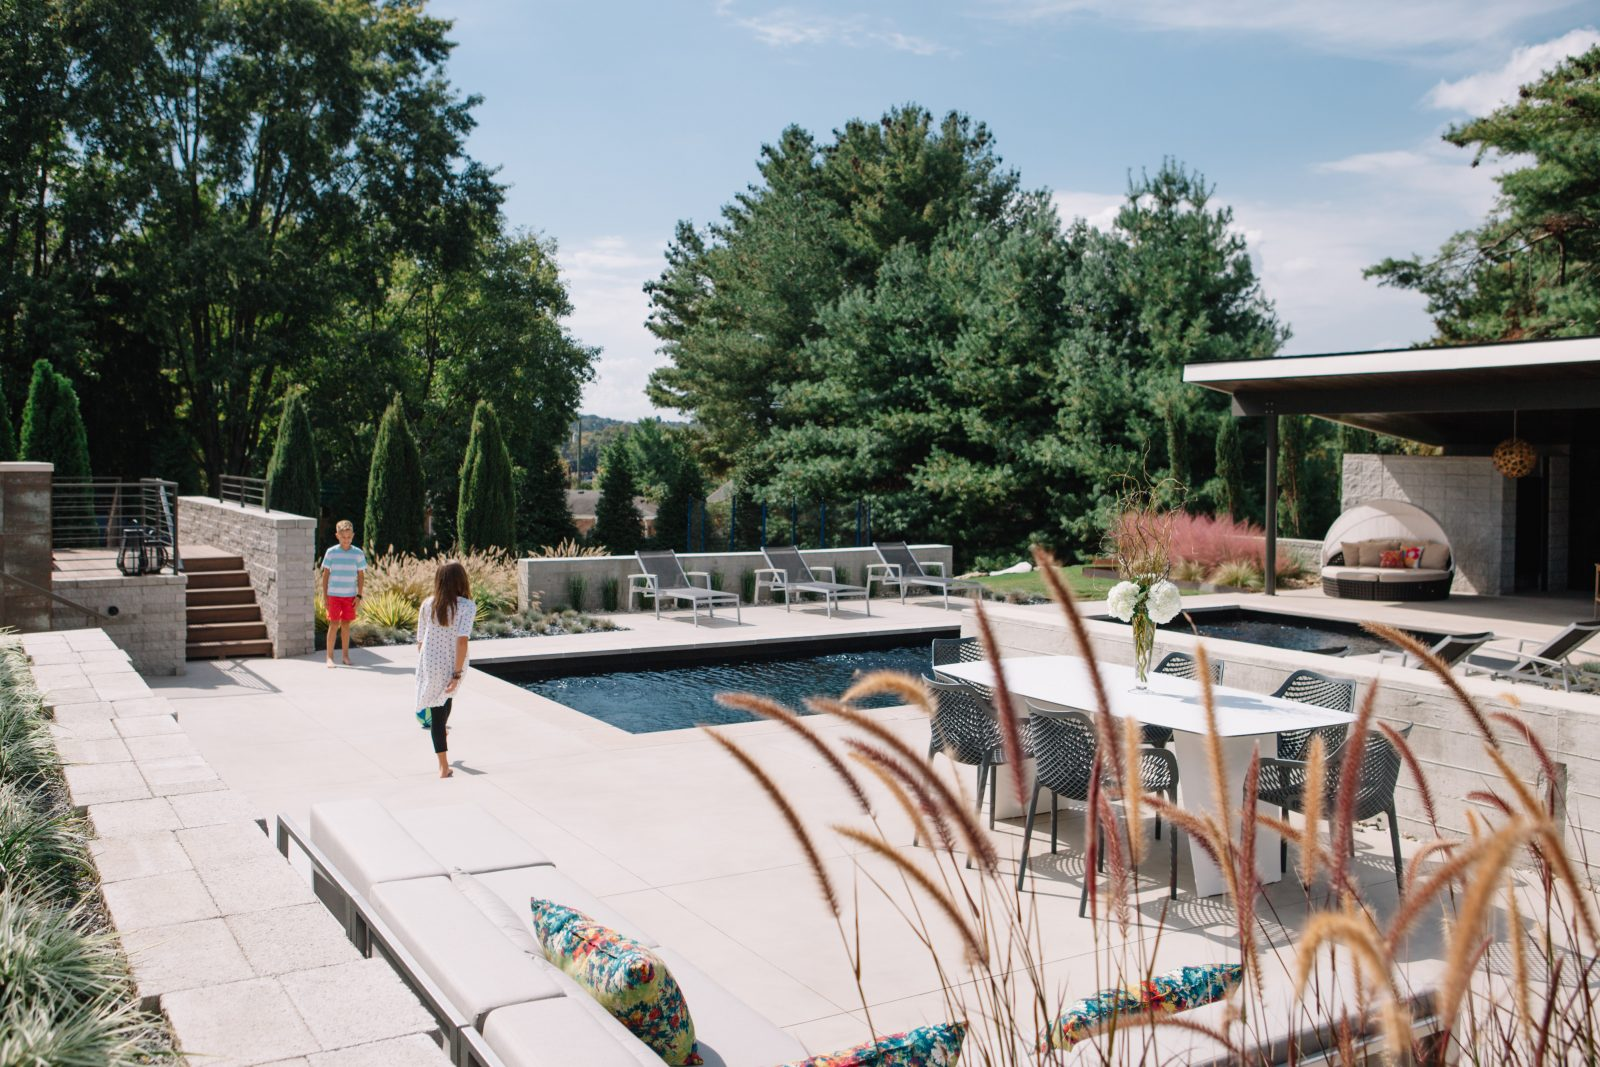 Take inspiration from this outdoor design for pool, hot tub, dinning and lounge space